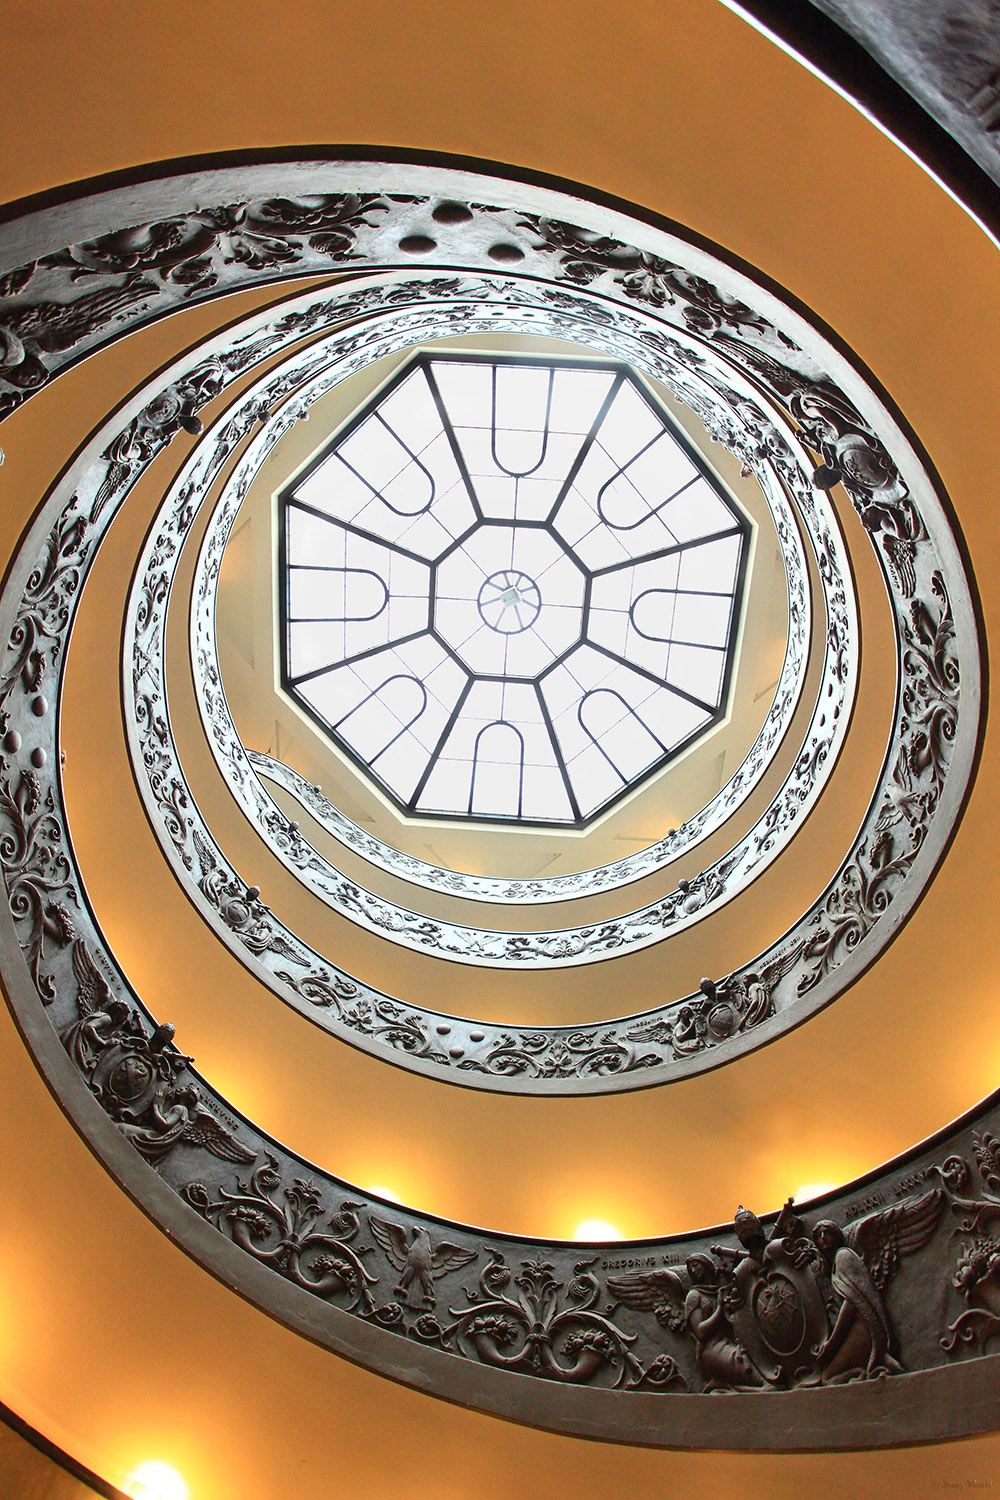 Italy / Vatican-Rome / Vatican museum / Spiral staircase by Giuseppe Momo